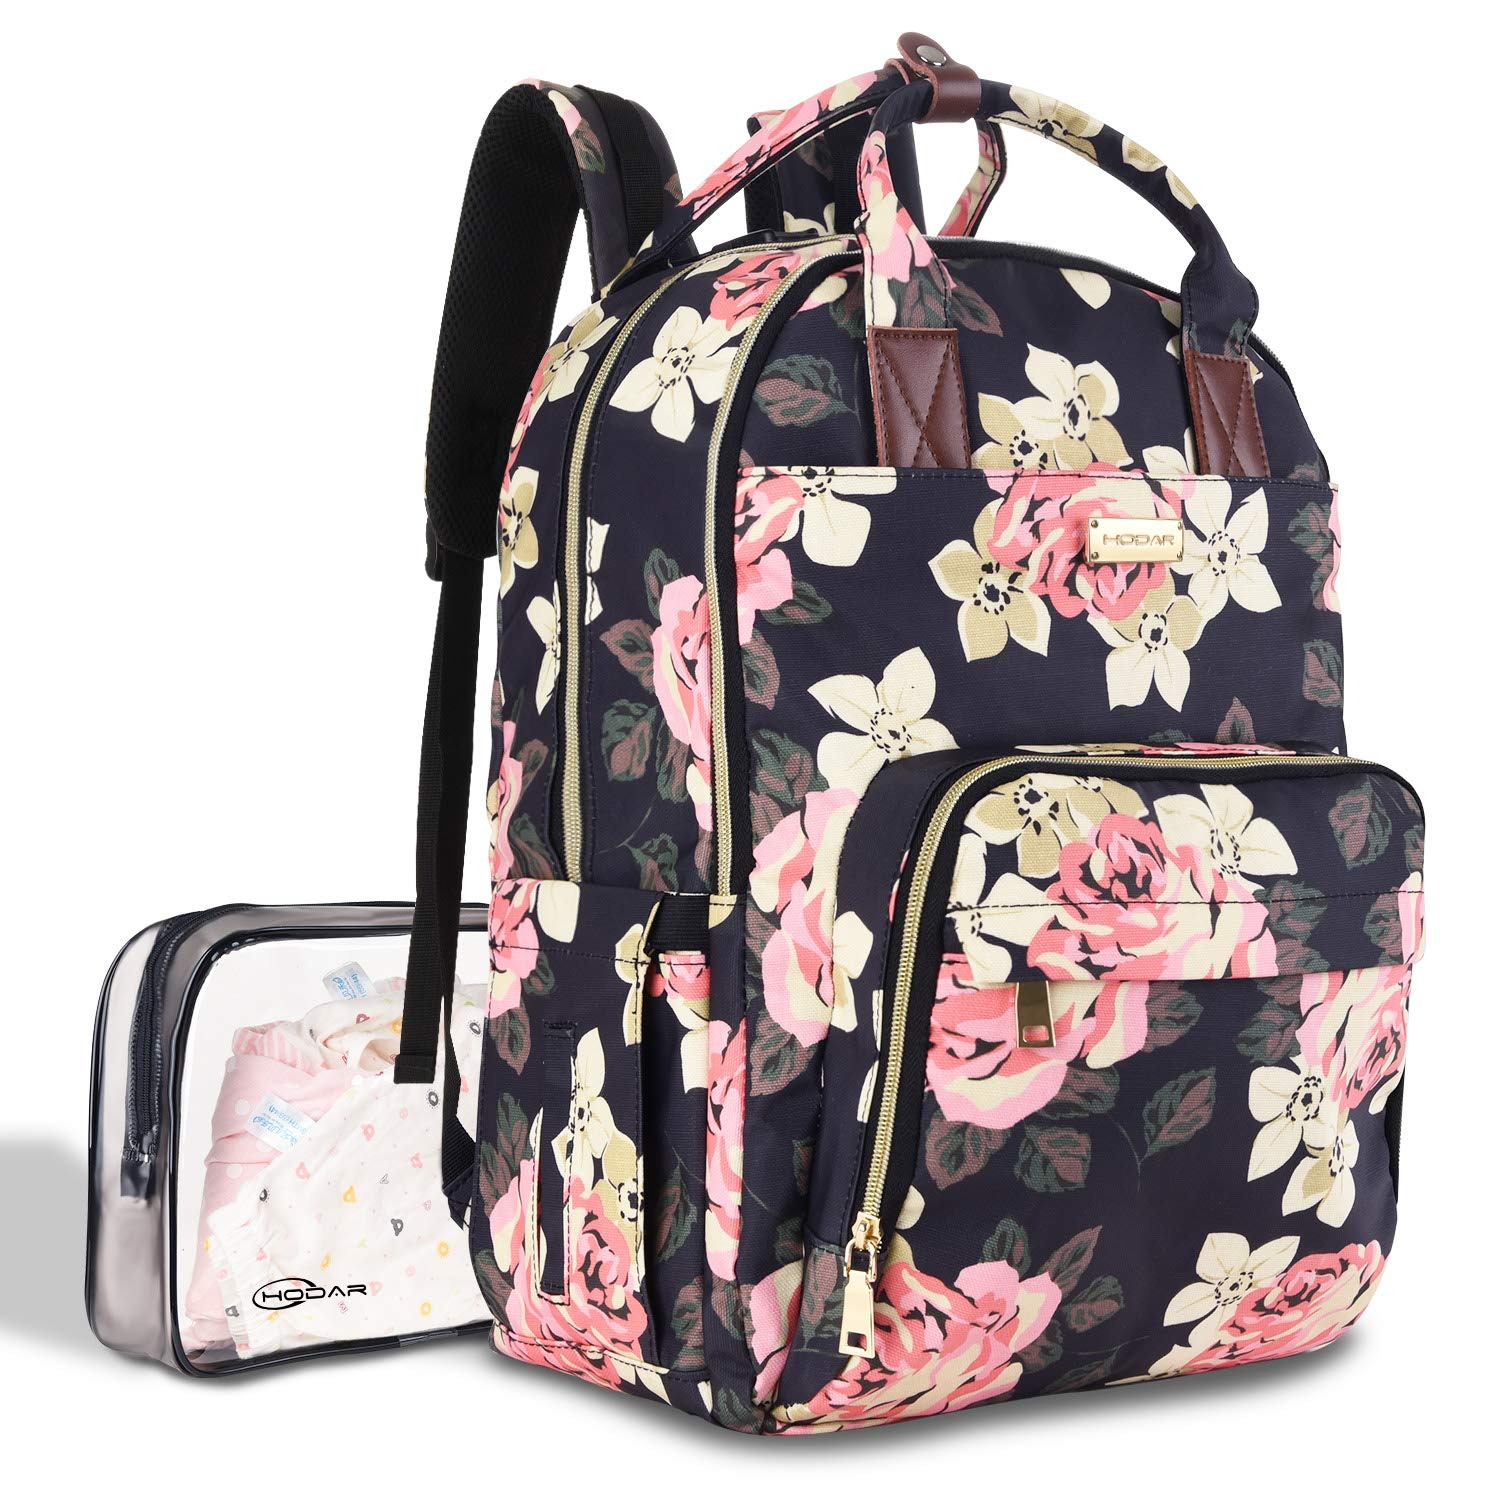 Diaper Bag Backpack, Large Capacity Baby Nappy Changing Bag Multi-Function Waterproof Travel Back Pack for Mom Dad, with Large Insulated Pocket and Independent Wet Cloth Bag by Hodar